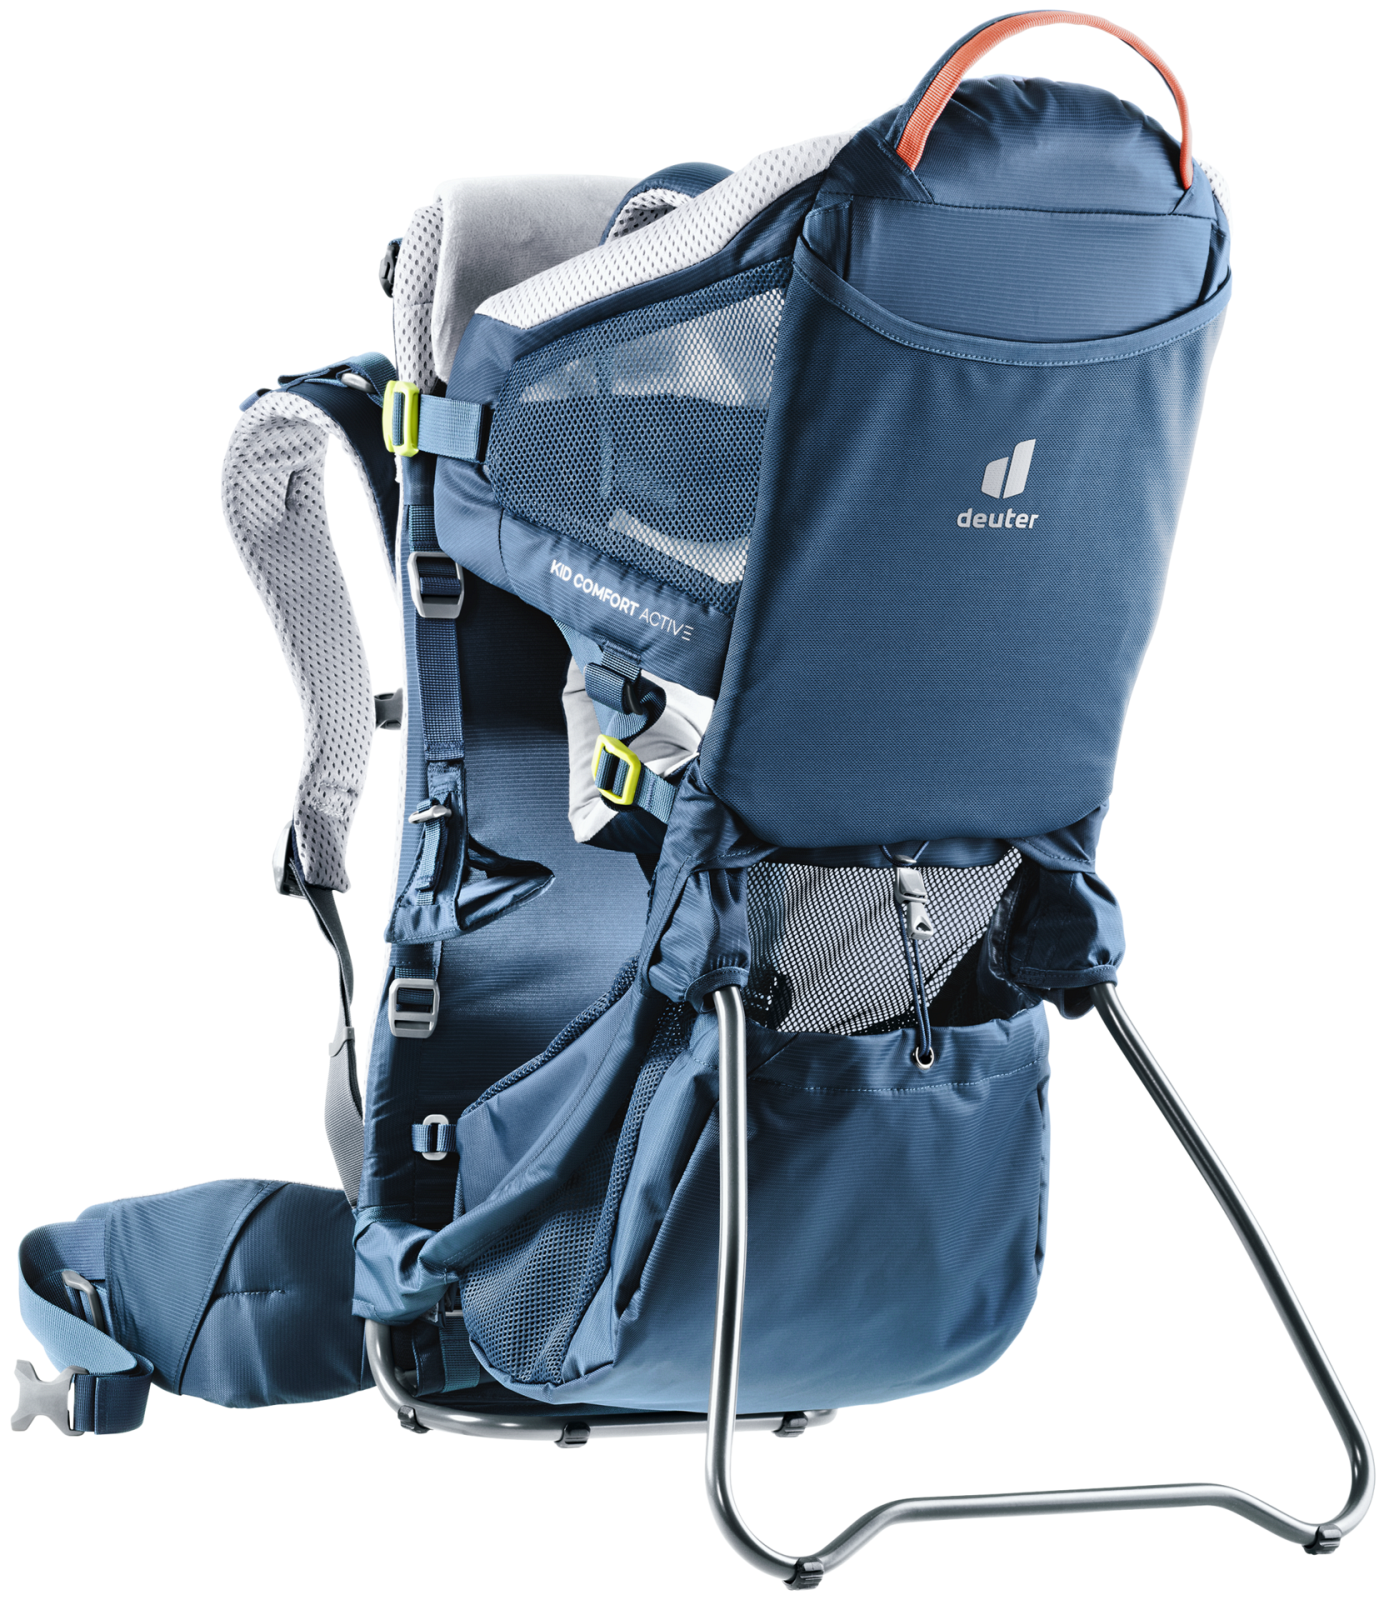 Deuter KID COMFORT ACTIVE Kindertrage